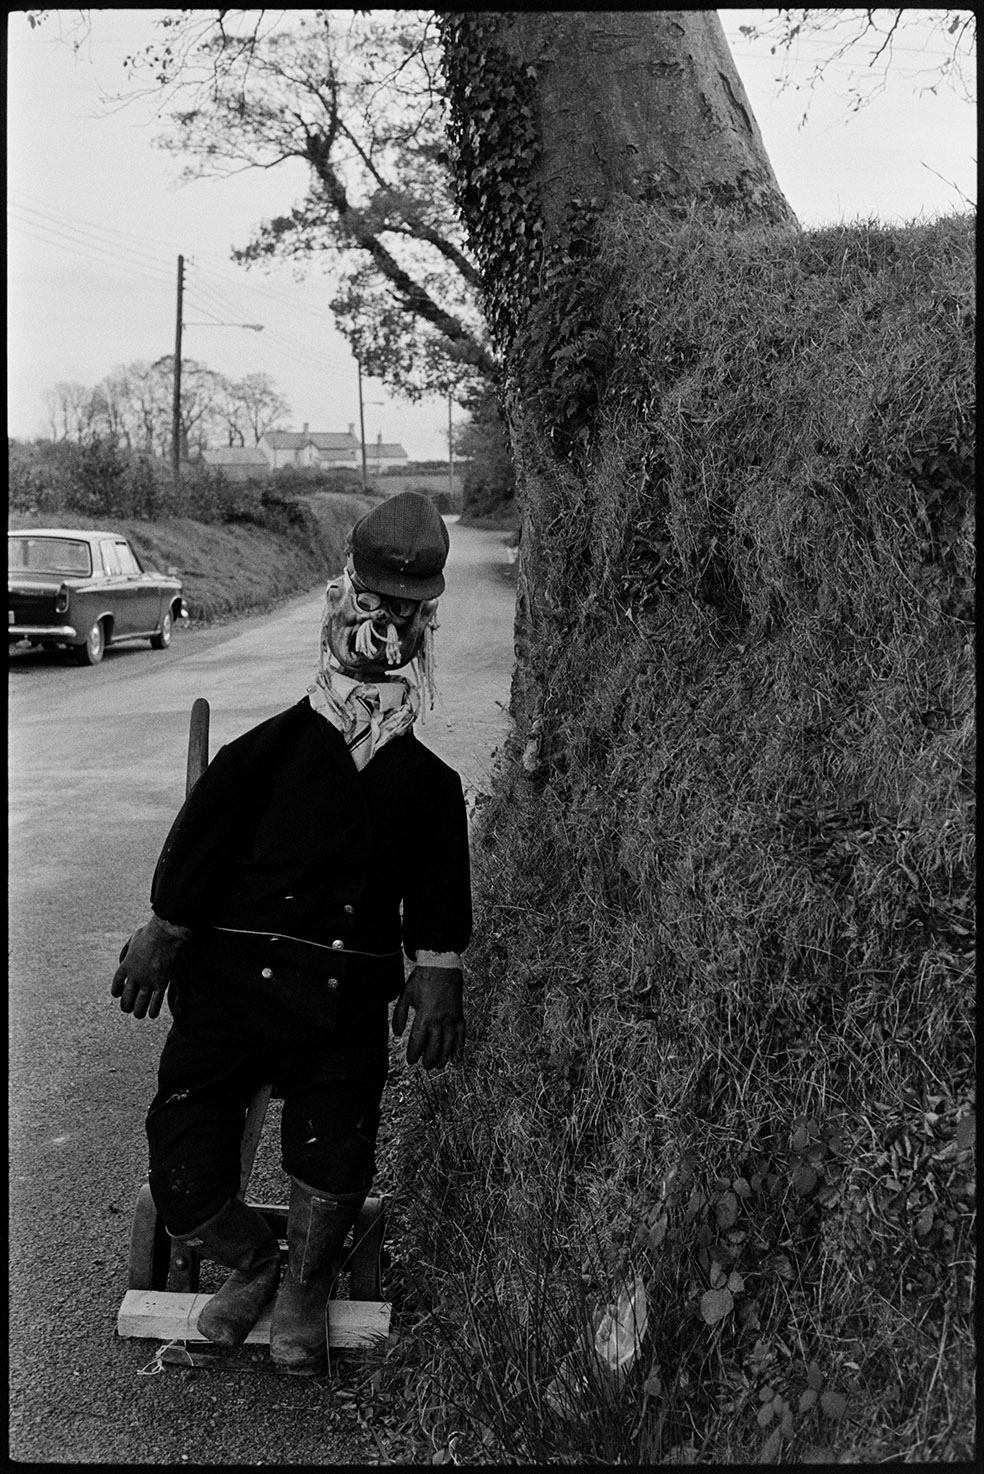 Guy in village street - Guy Fawkes, Ashreigney, October 1975